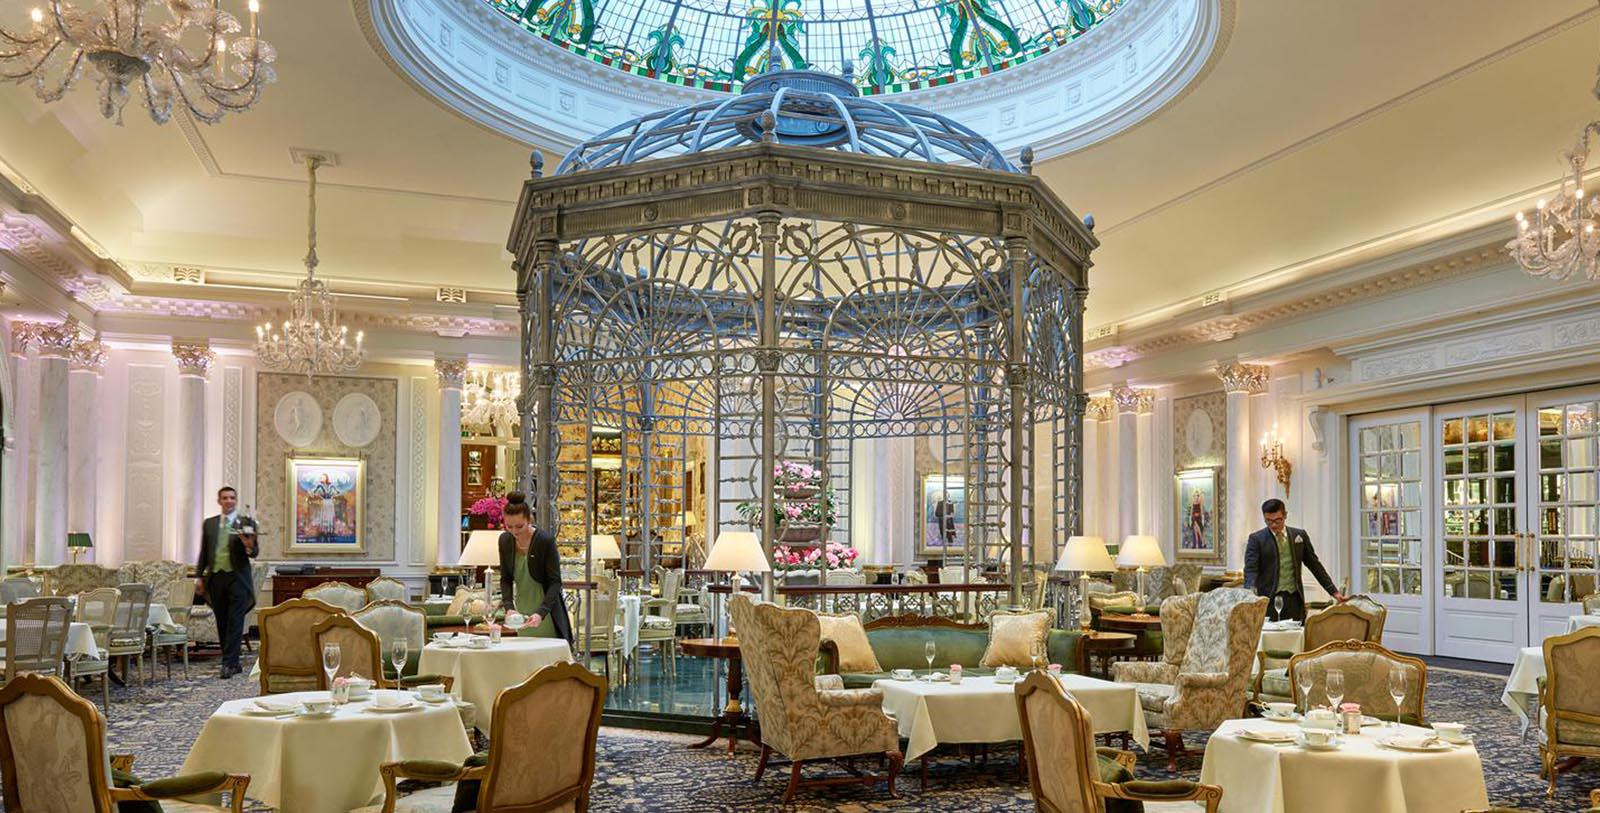 Image of the Thames Foyer at The Savoy London, 1889, Member of Historic Hotels Worldwide, in London, England, United Kingdom, Taste